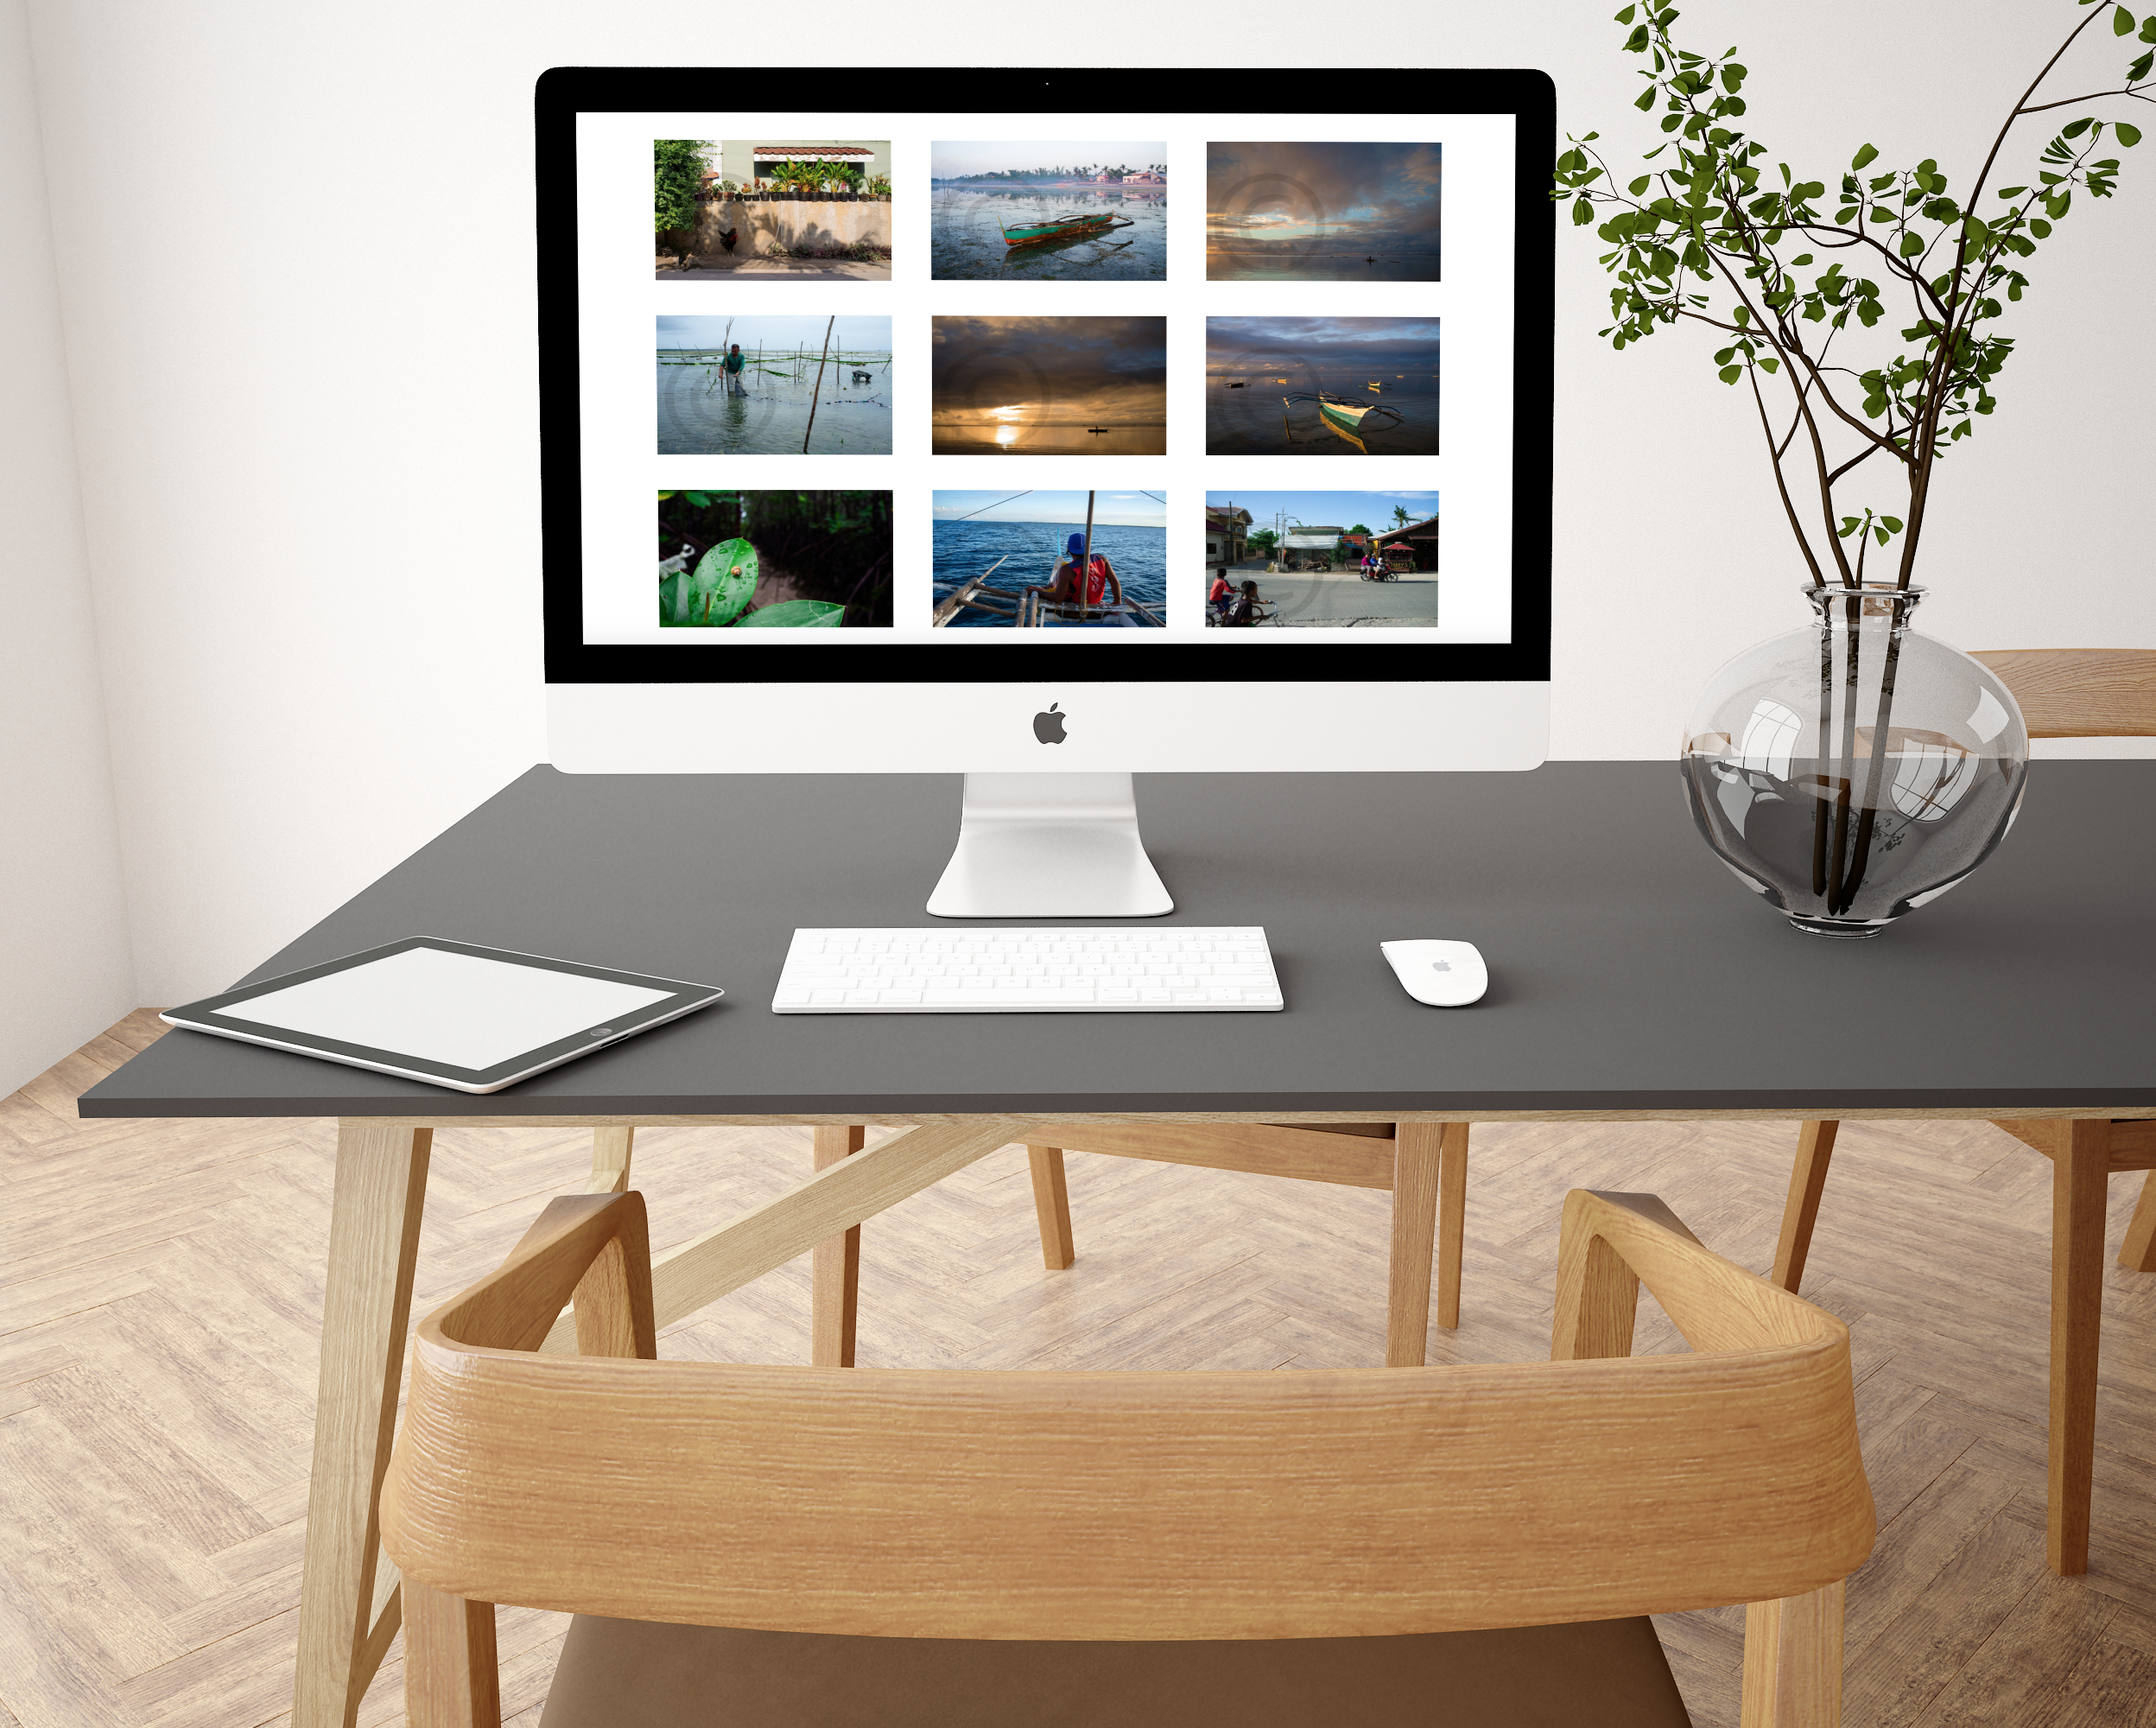 What to prepare before making a website - product photography